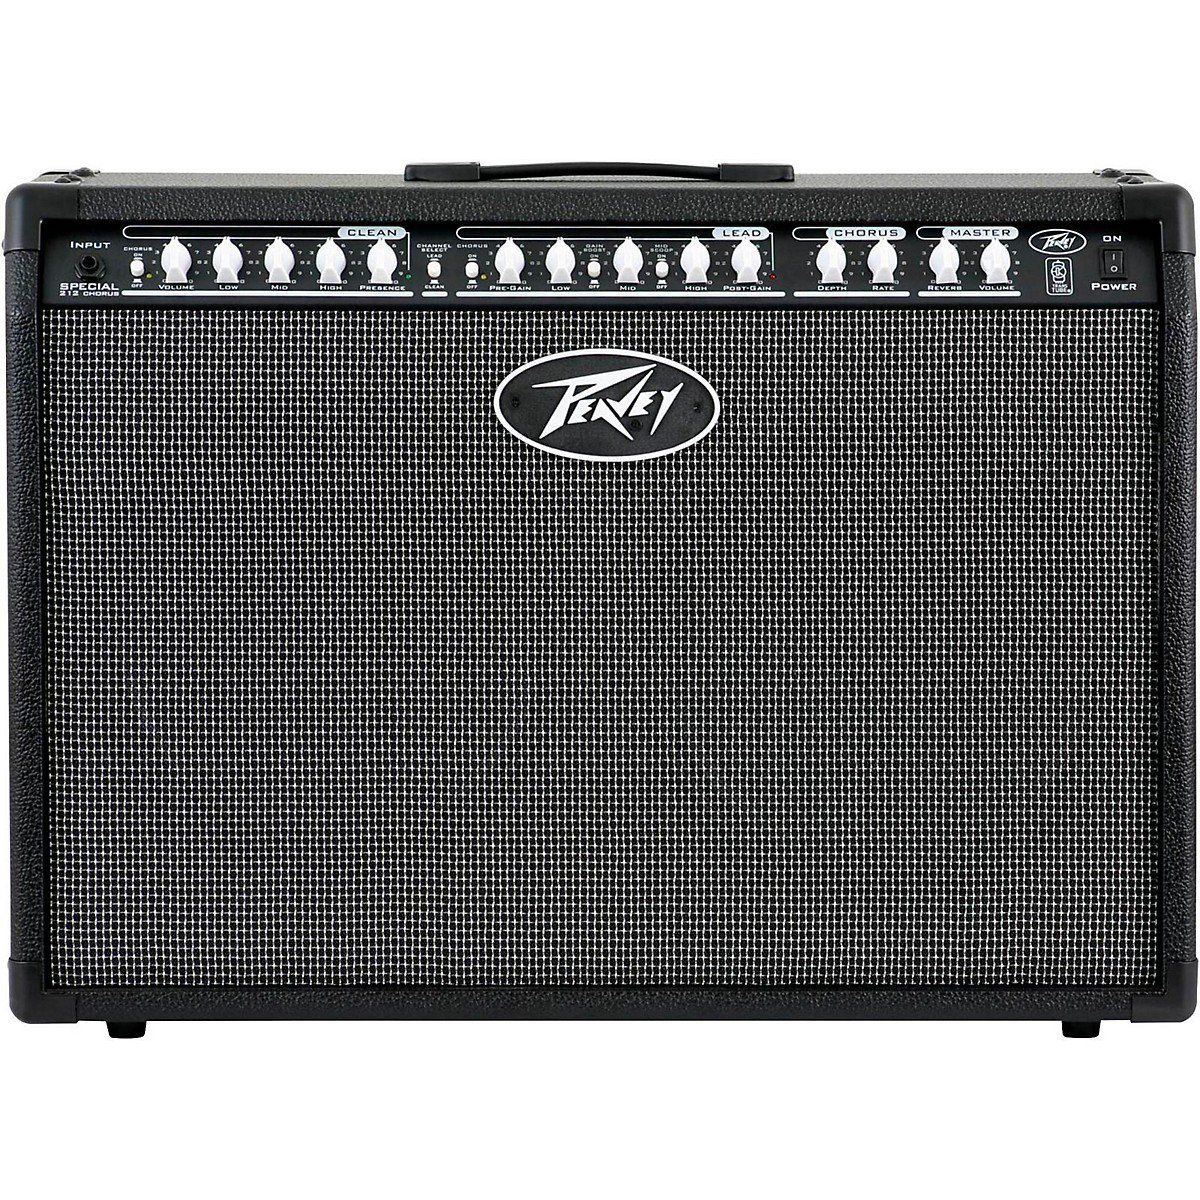 Peavey 03601610 Special Chorus 212 Guitar Amplifier     by Peavey Electronics  jsmartmusic.com